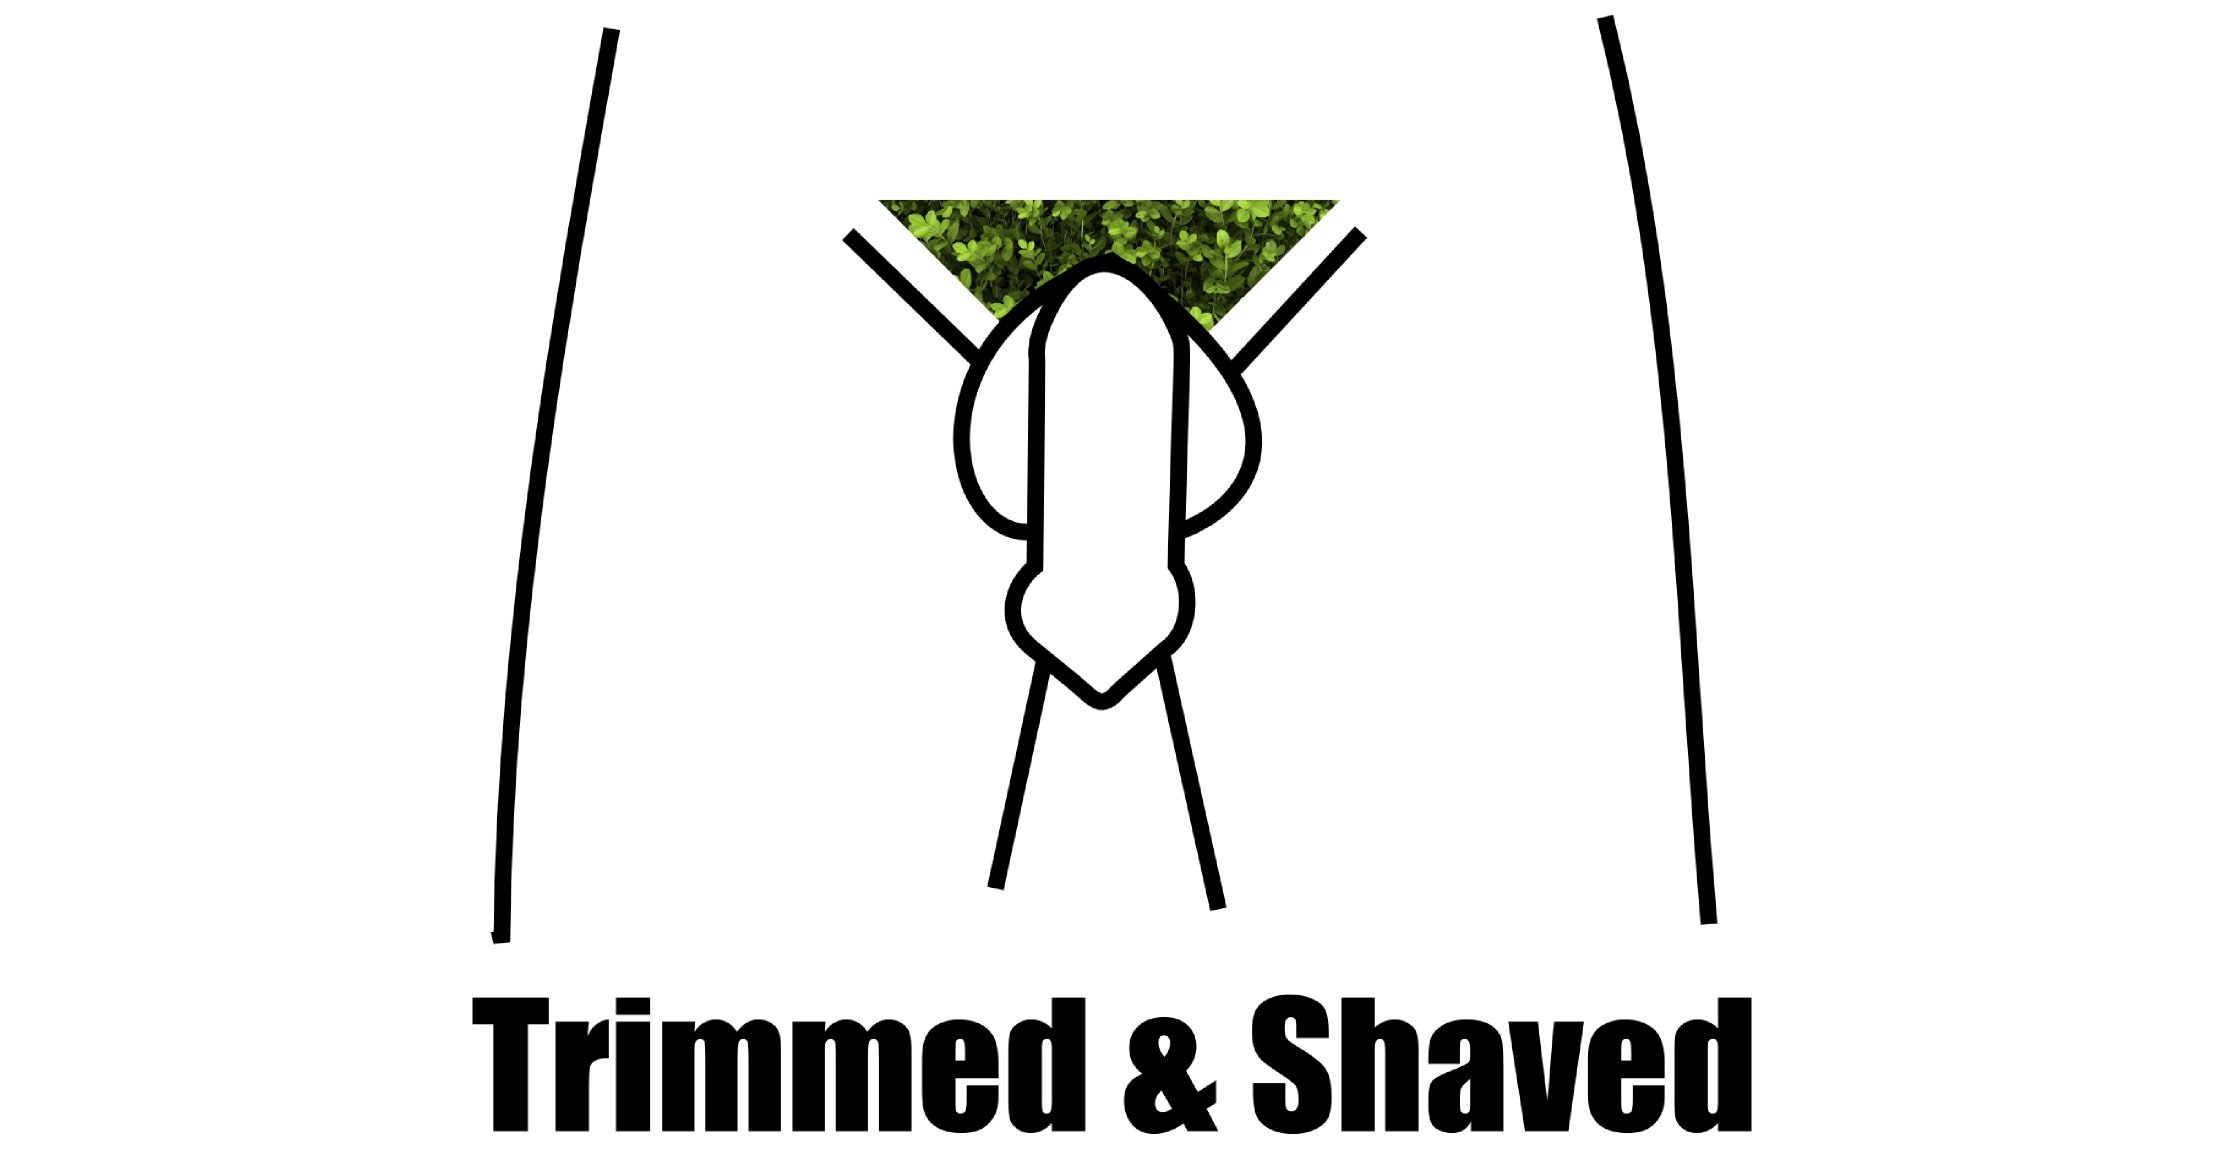 Pubic Hair Styles Trimmed and Shaved into a Shape